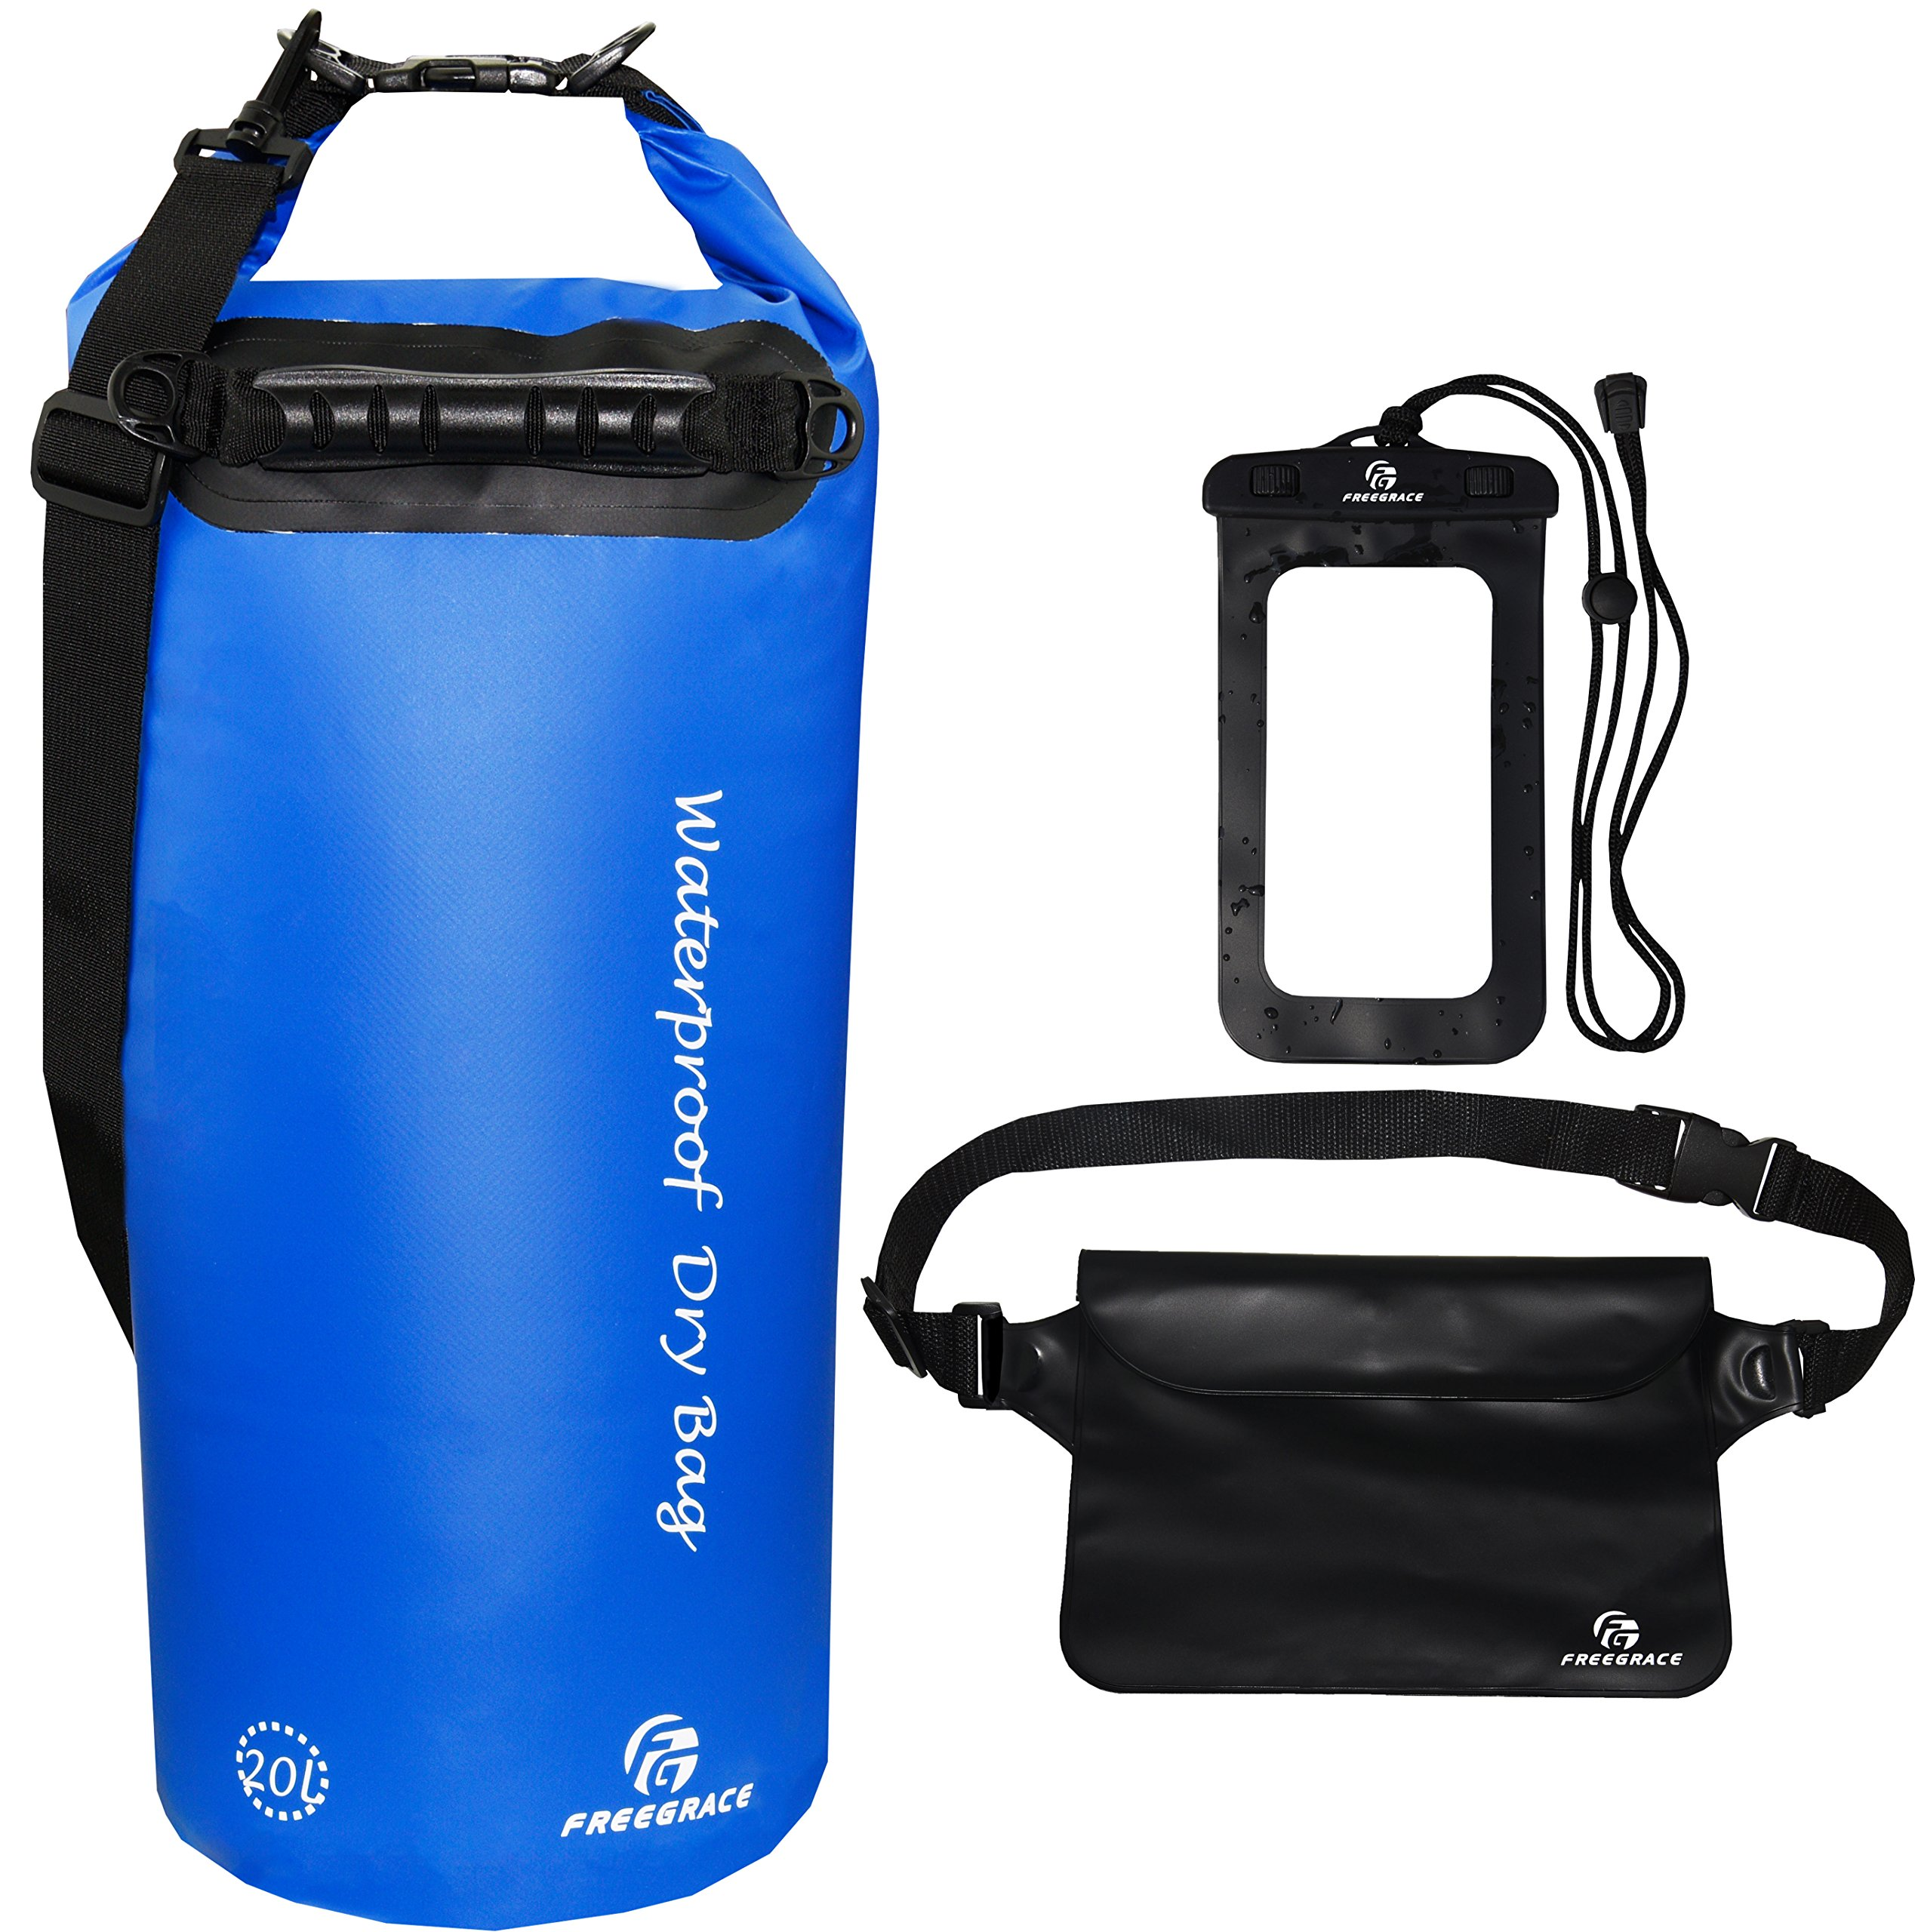 Freegrace Waterproof Dry Bags Set of 3 Dry Bag with 2 Zip Lock Seals & Detachable Shoulder Strap, Waist Pouch & Phone Case - Can Be Submerged Into Water (Navy Blue, 20L) by Freegrace